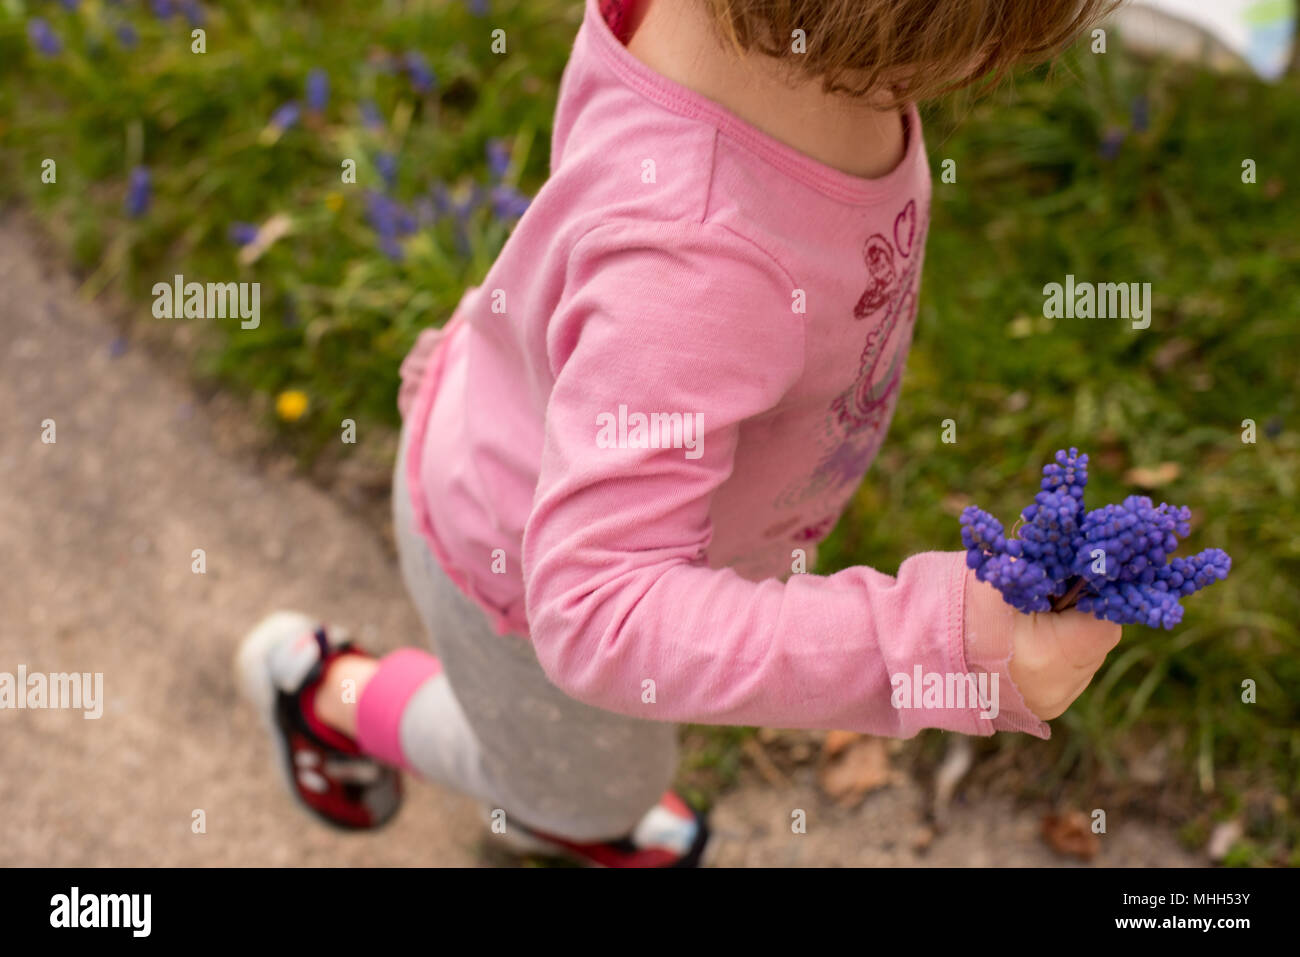 A little girl holds a bouquet of  purple hyacinths flowers in the spring. - Stock Image